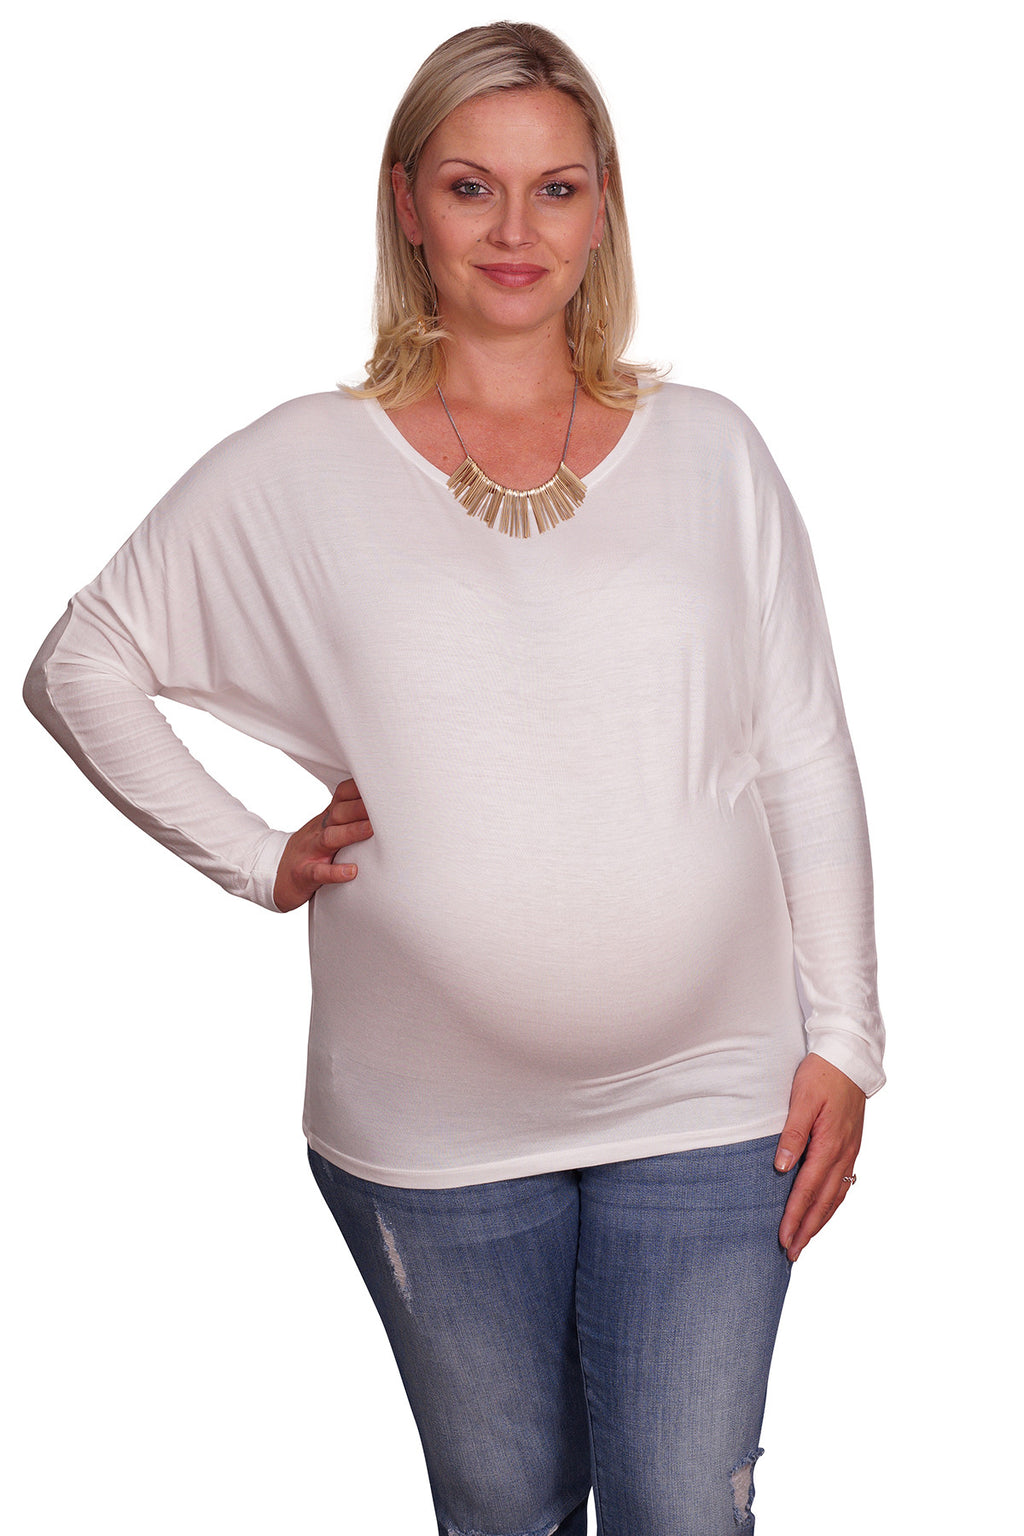 Plus Maternity Dolman - Mommylicious